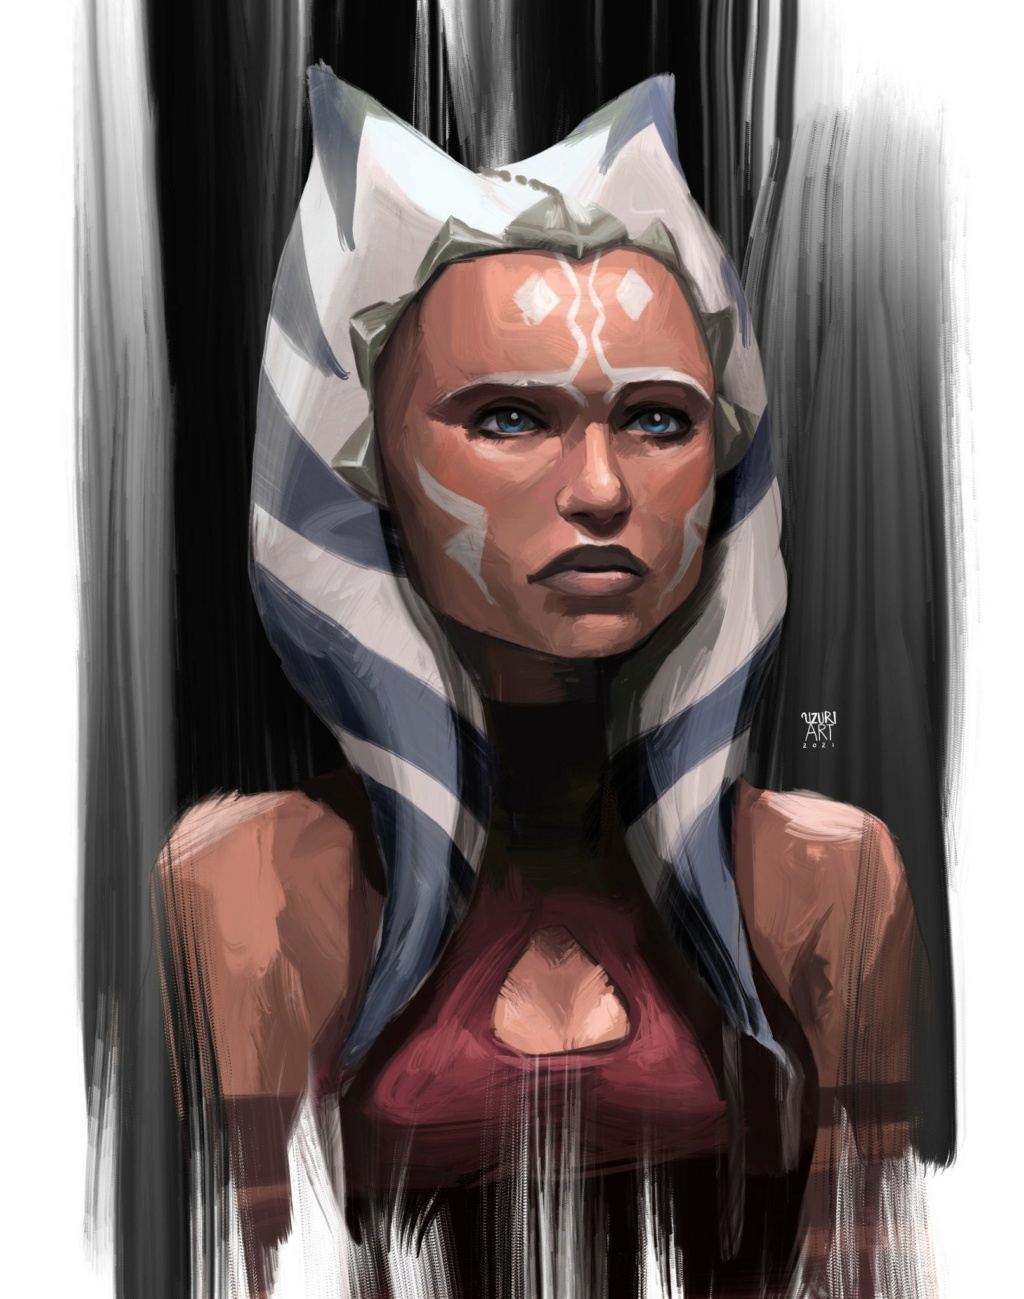 Digital Art par UZURI ART - Star Wars Uzuri_12